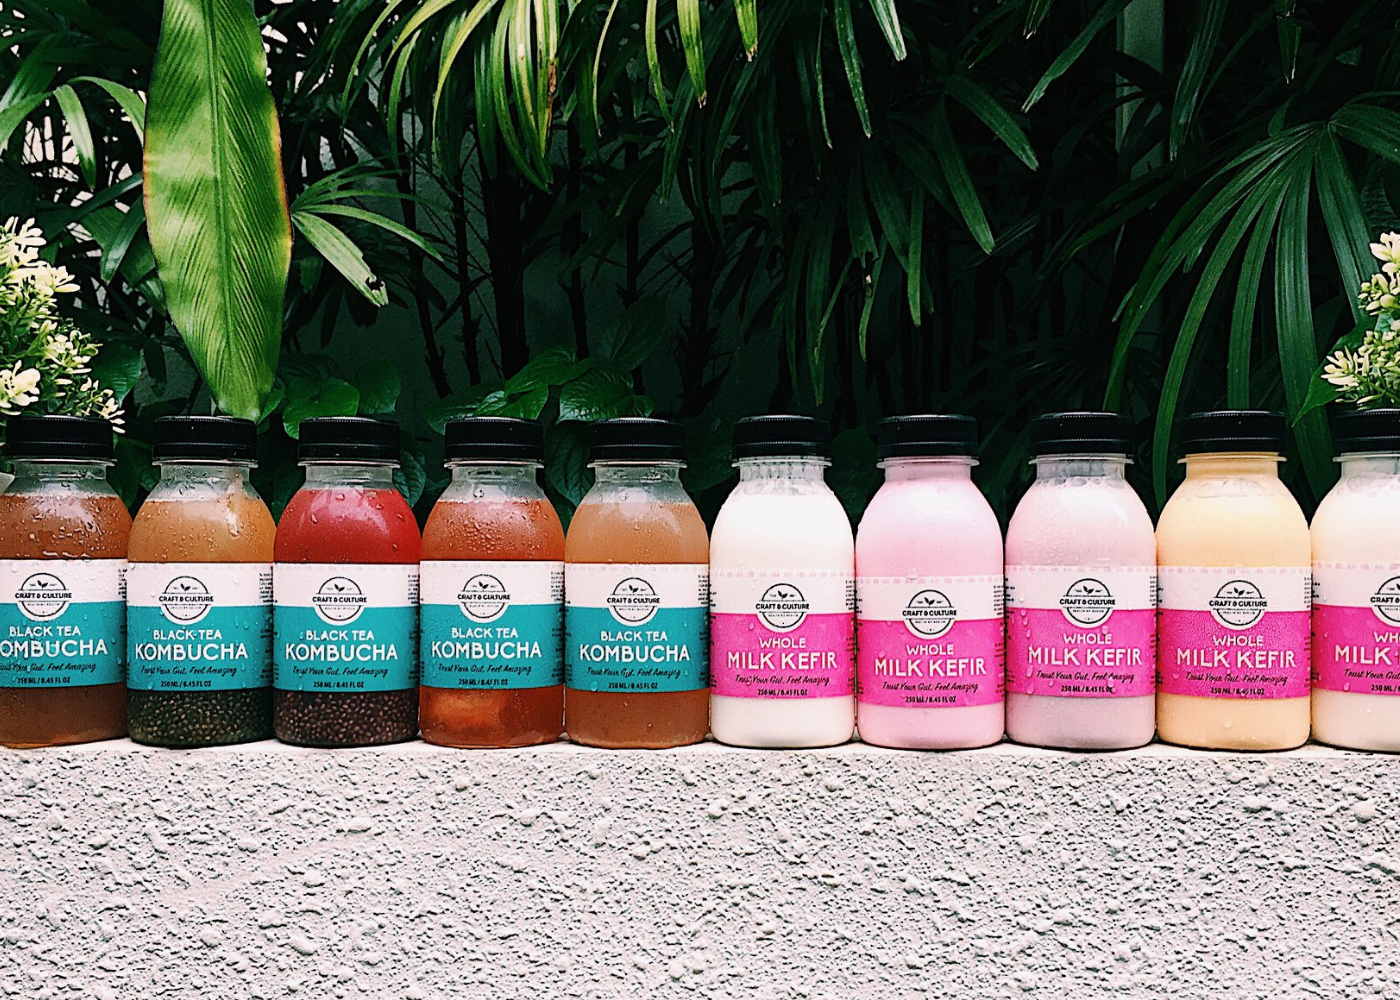 Let's talk about gut health: These brands make their own kefir and kombucha in Singapore